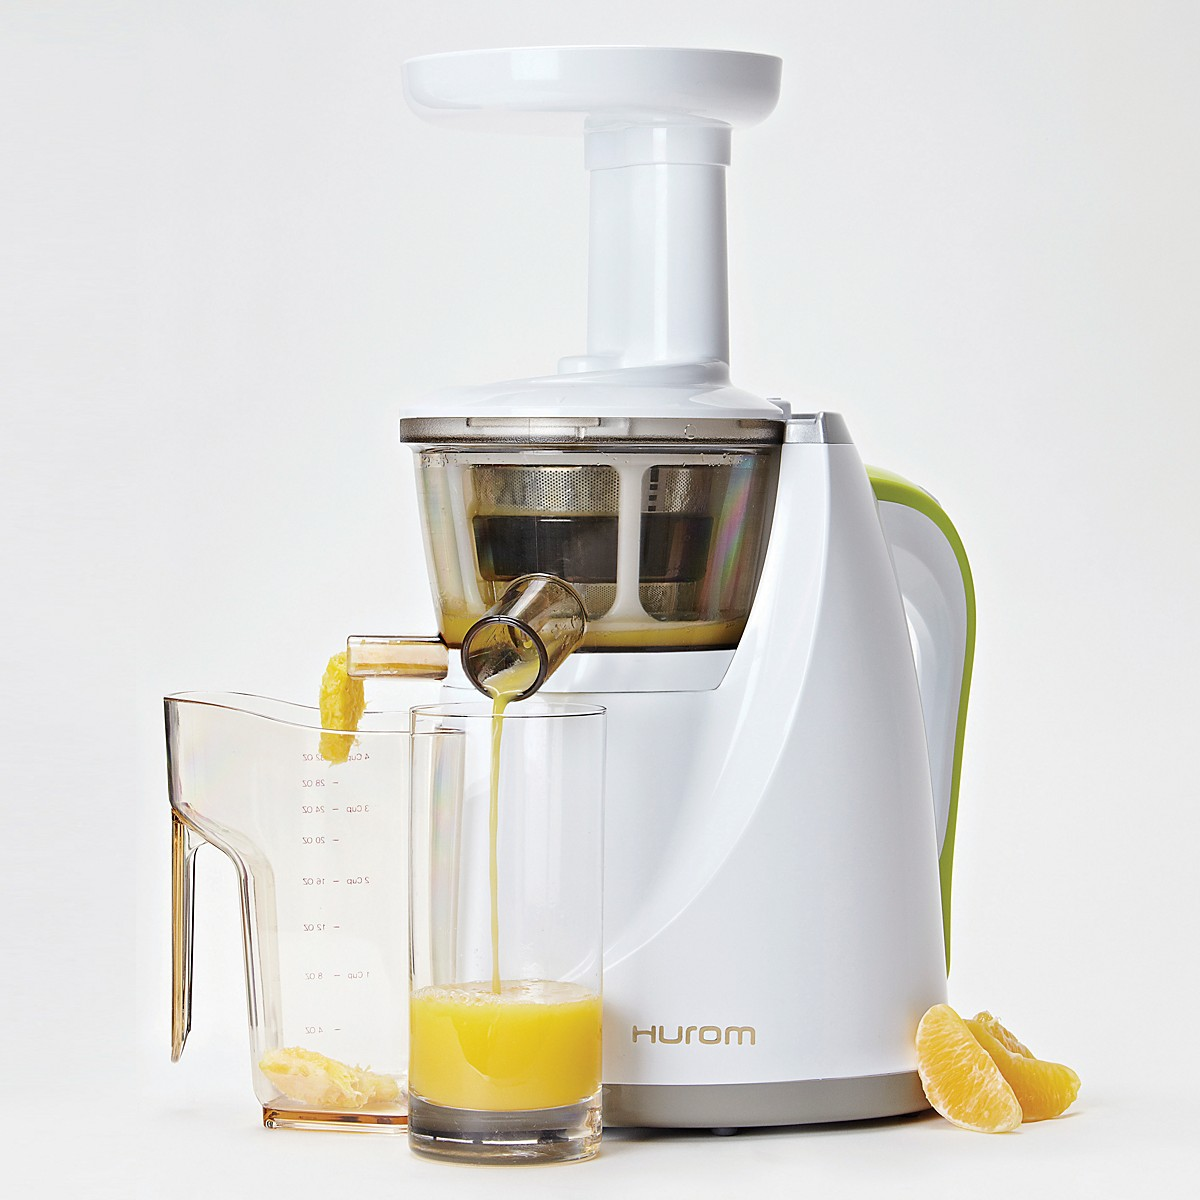 Slow Juicer Selain Hurom : The Wish List 2014 Our favourite kitchen appliances for chefs and avid home cooks